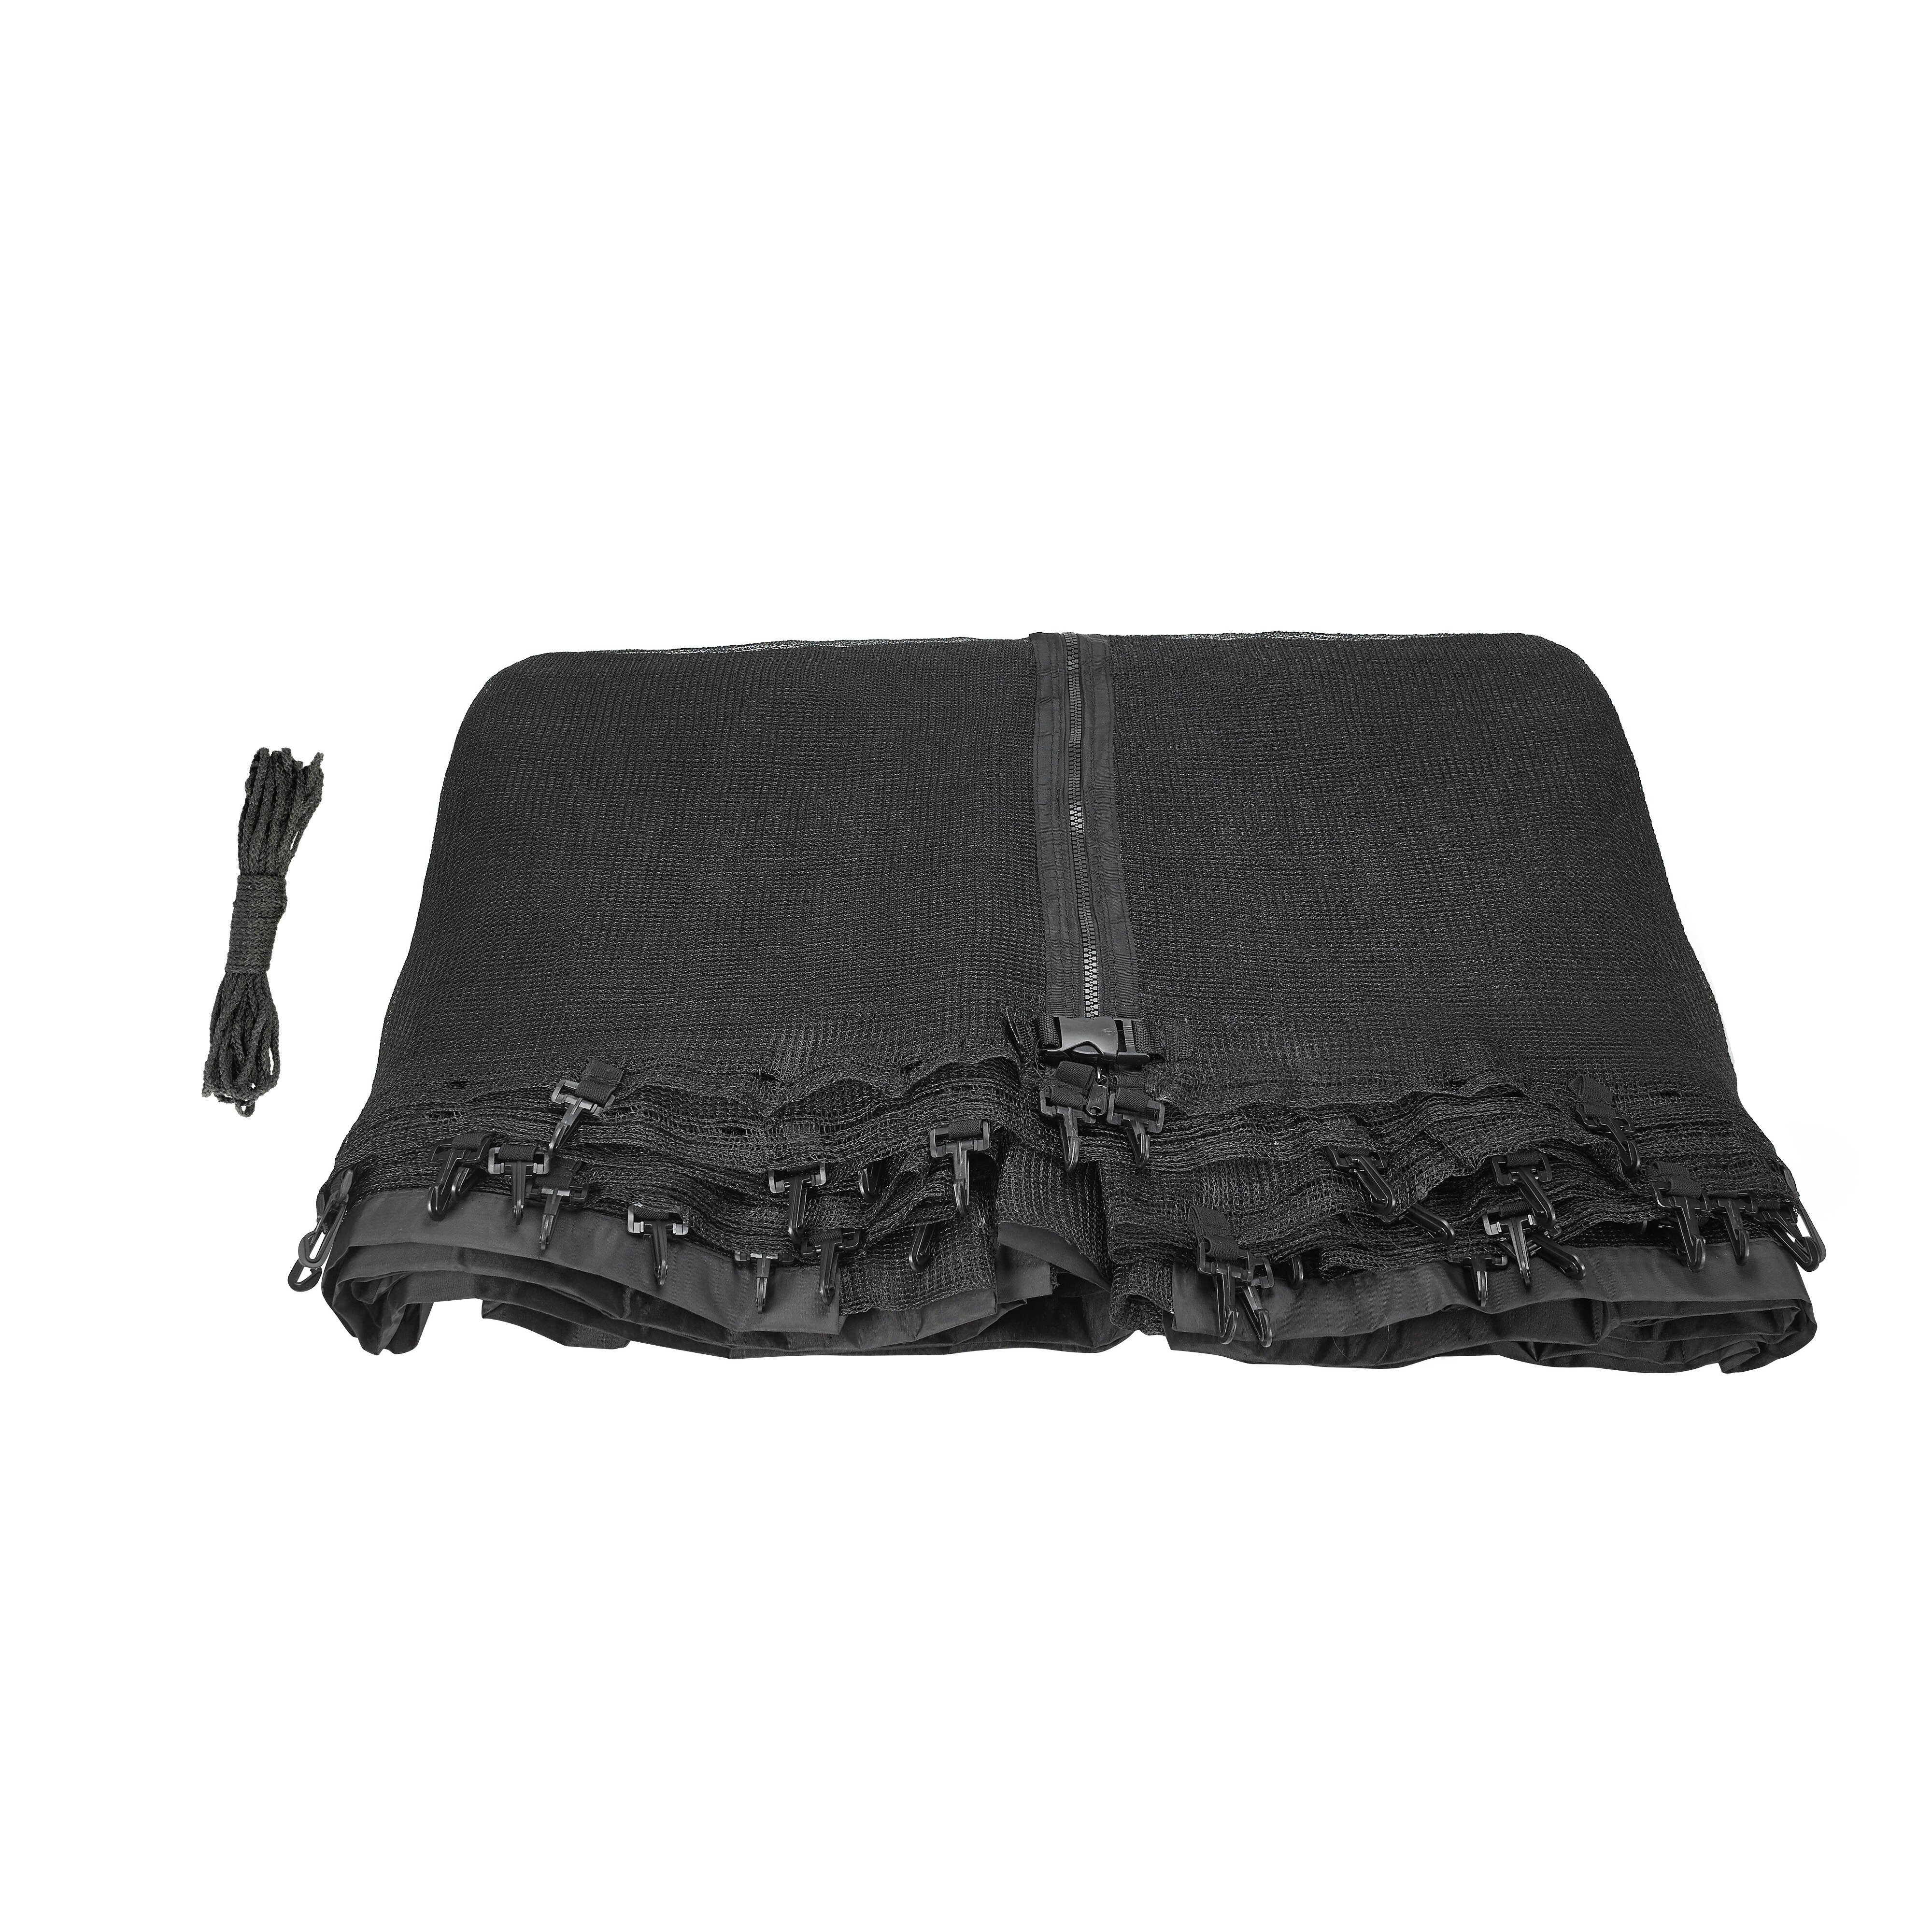 Upper Bounce 12' Round Replacement Trampoline Safety Net